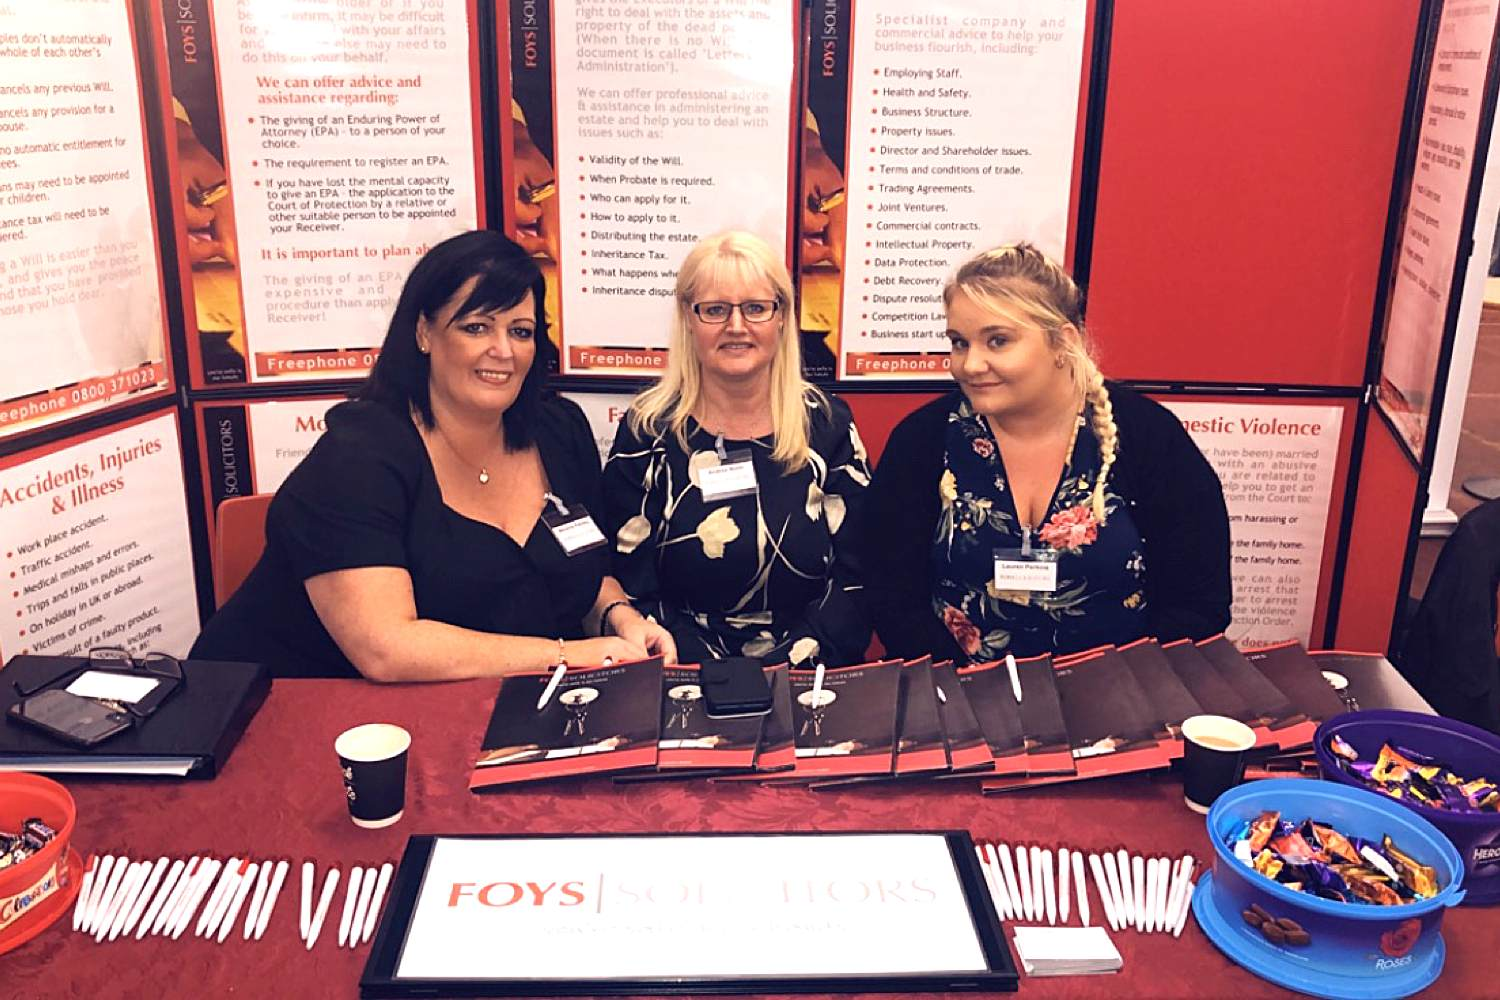 Foys Solicitors at the What's Next event in Worksop.